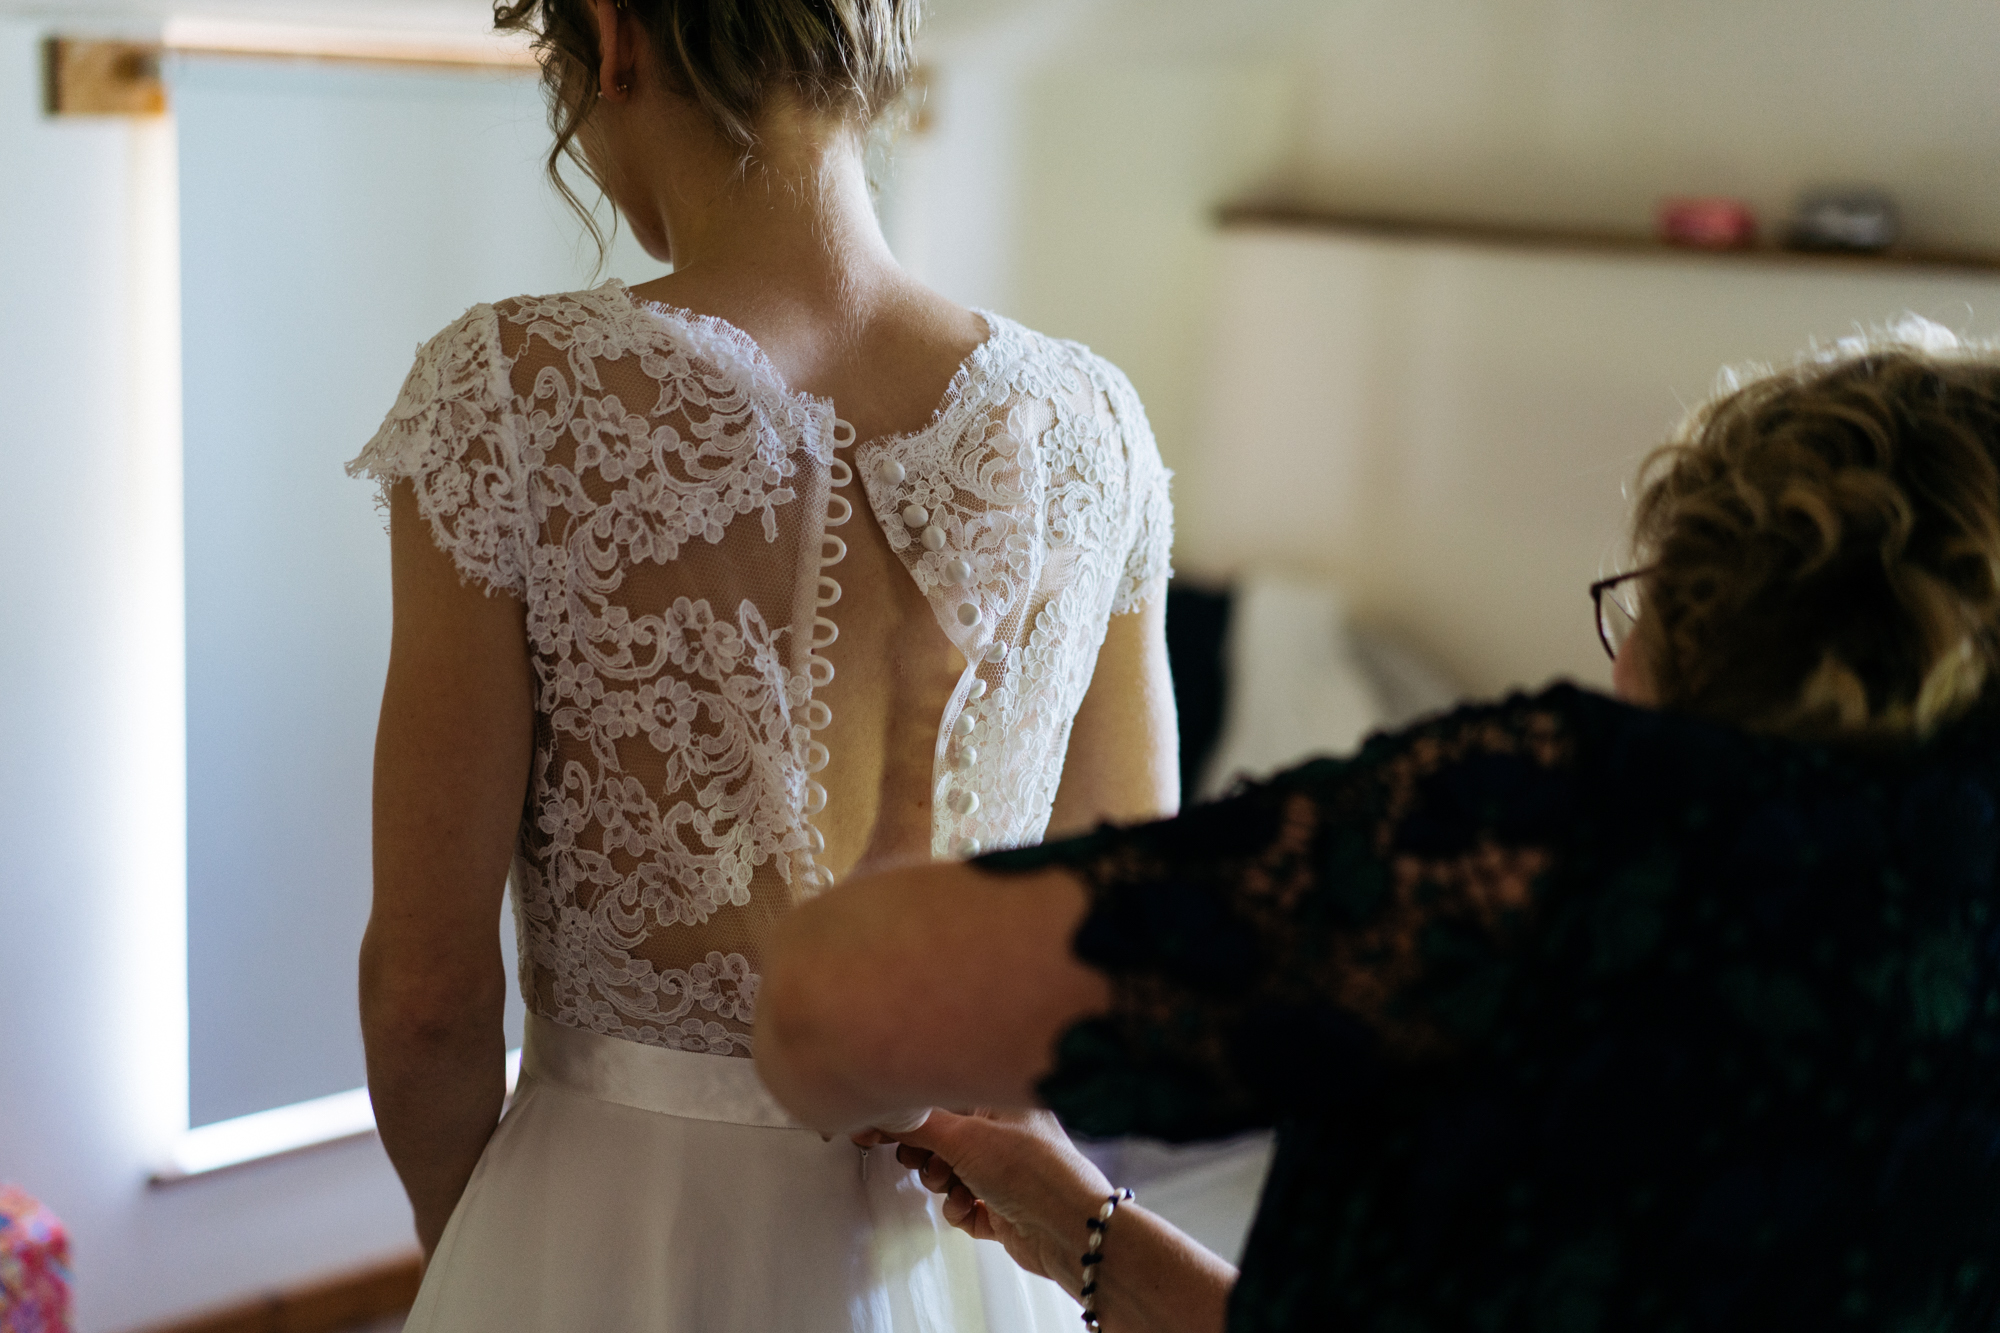 Putting the dress on